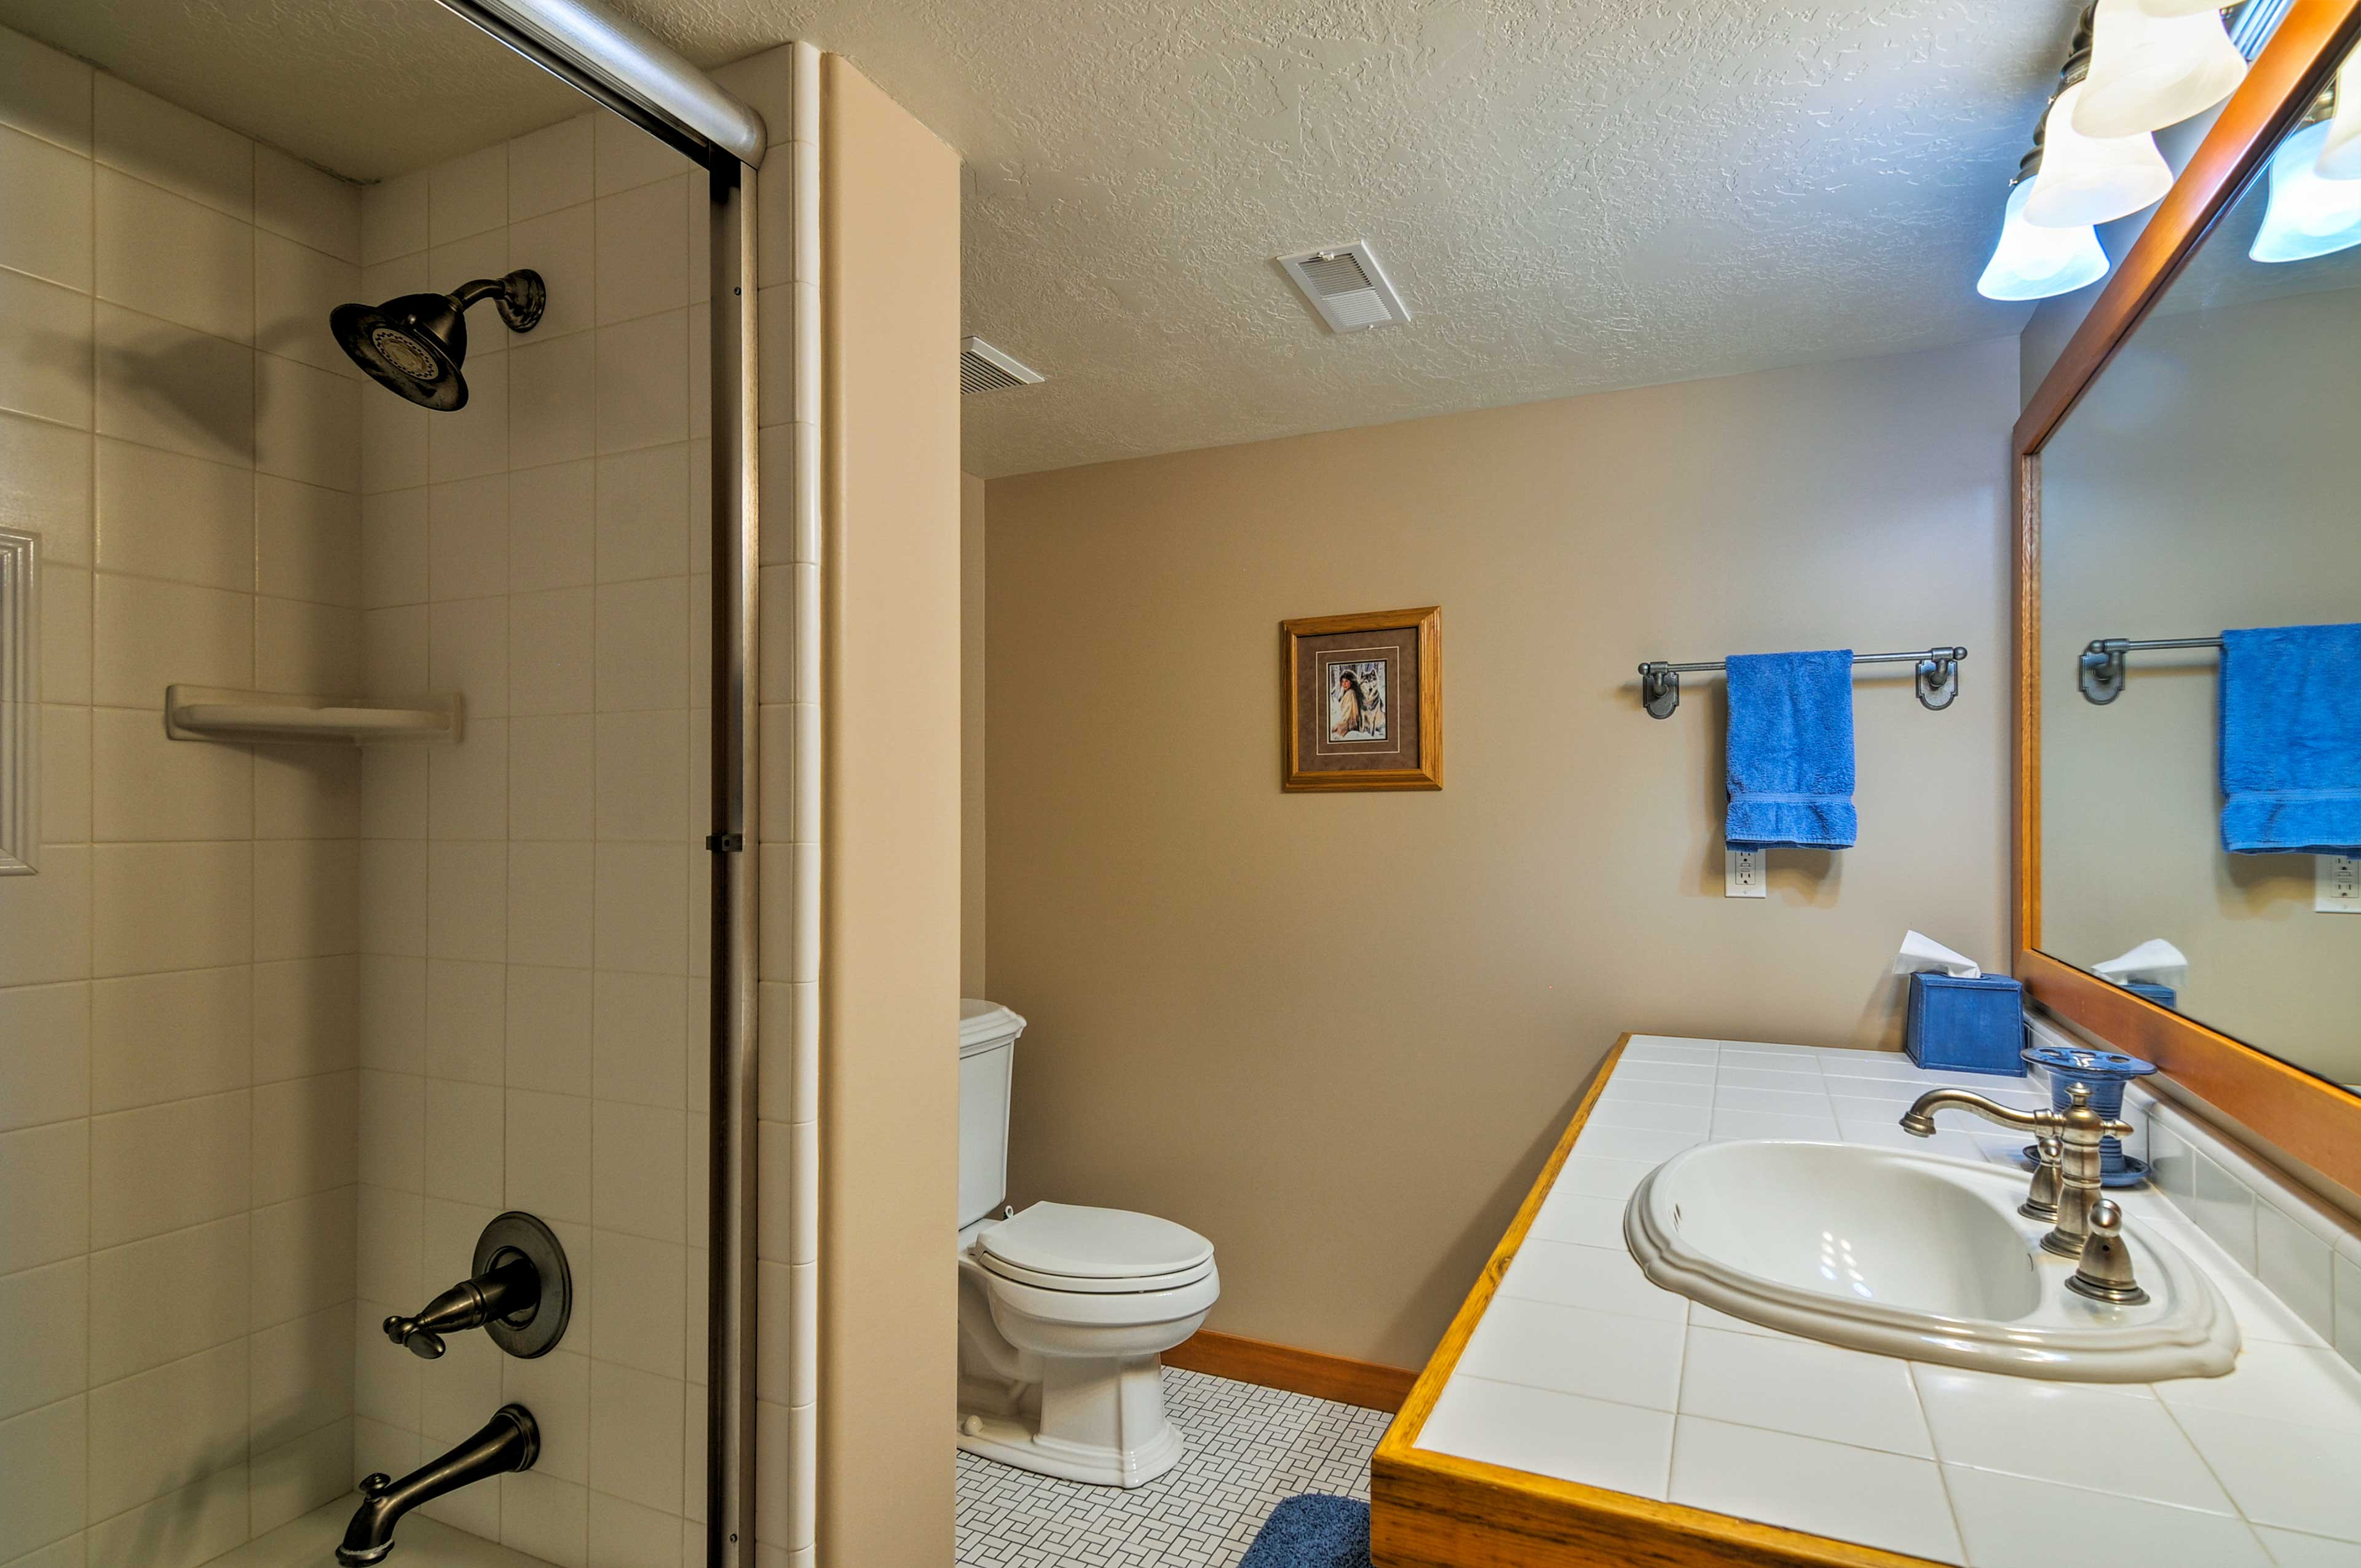 Freshen up for the day in the fourth bathroom's large vanity & mirror.